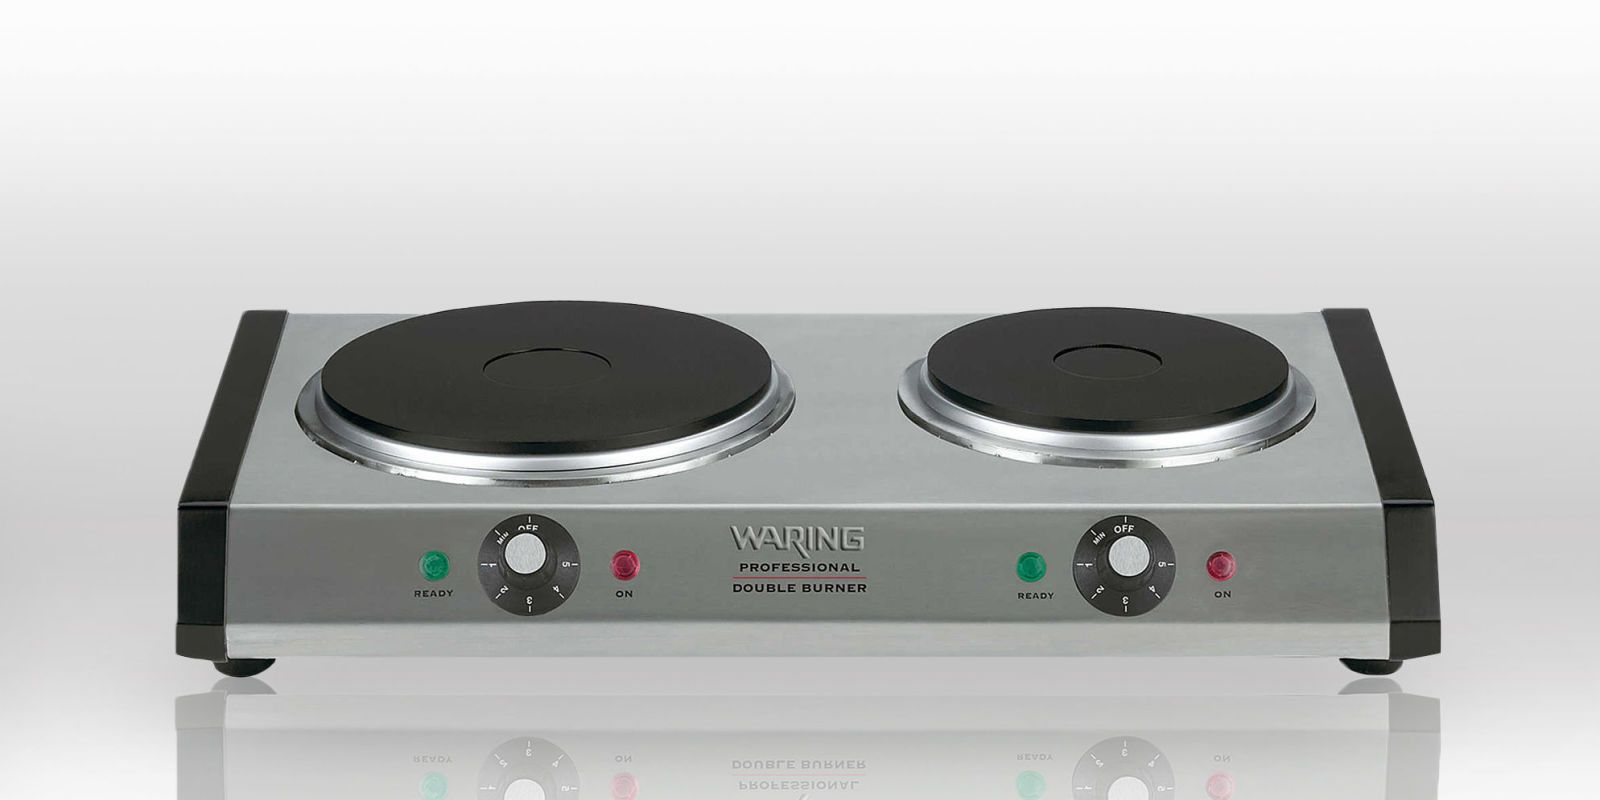 Charmant Portable Stove Double Burner